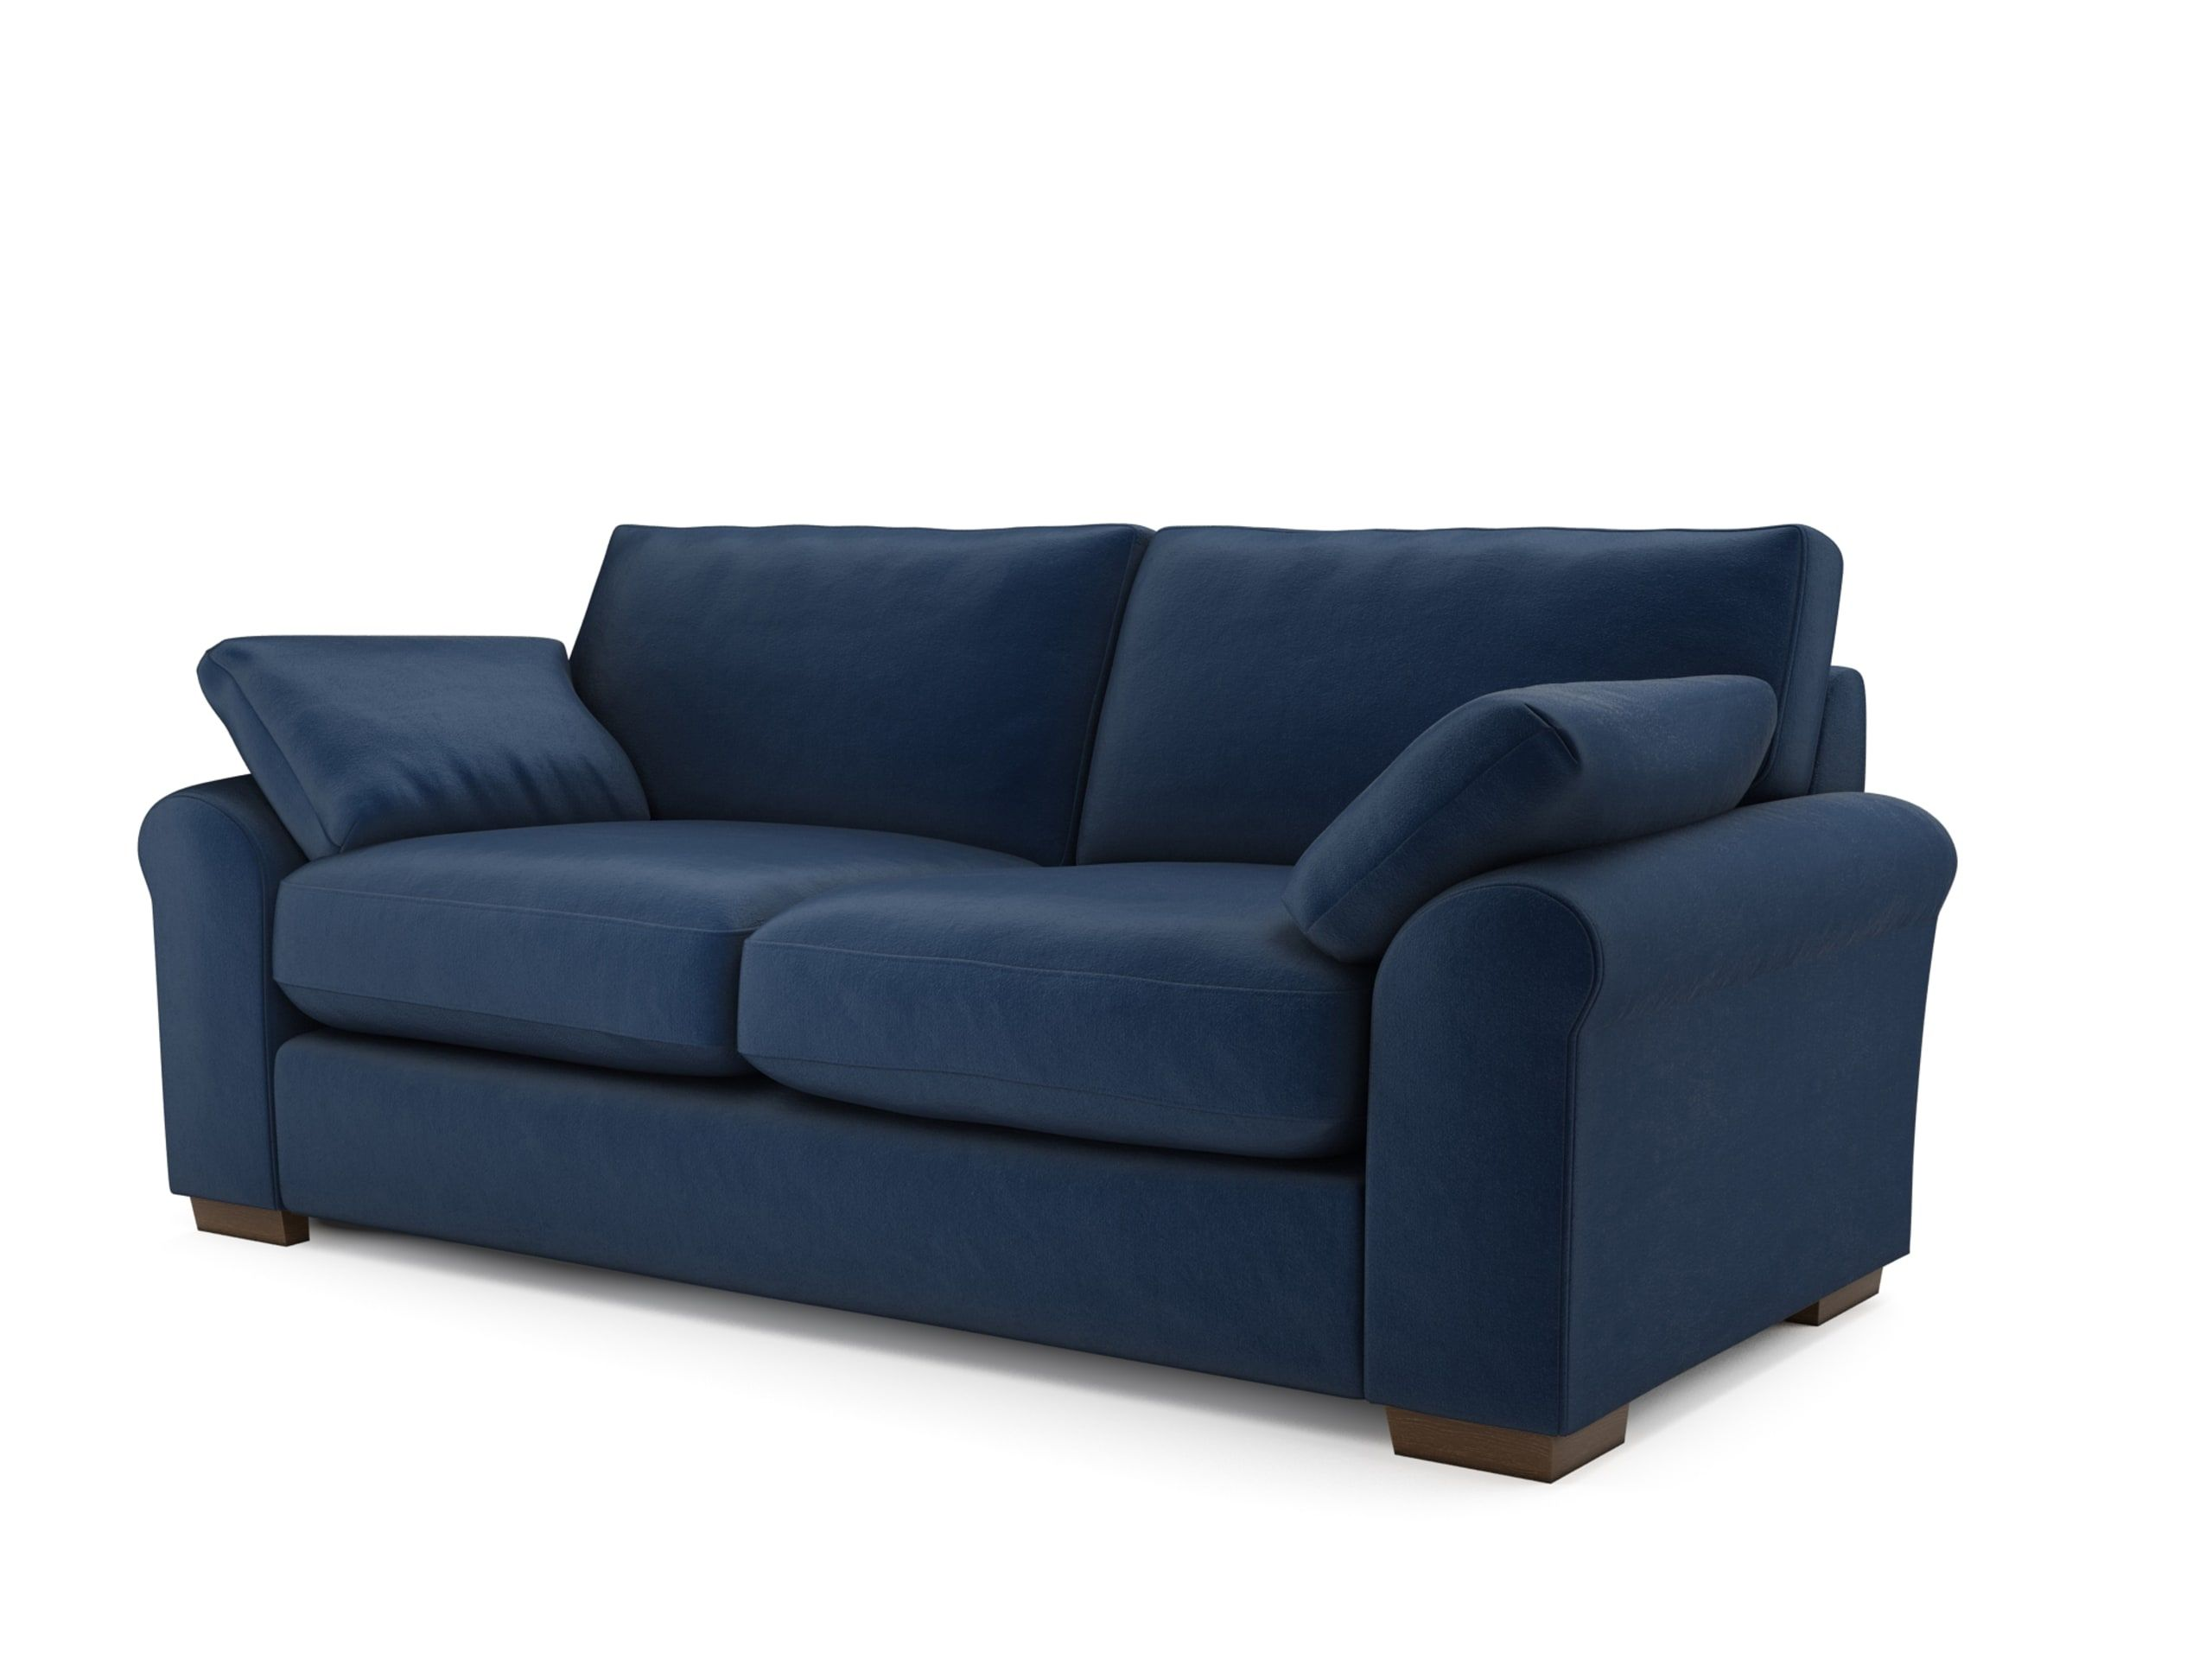 big soft comfy sofas buy sofa seat cushion covers the lounge co sophia 3 seater in velvet touch